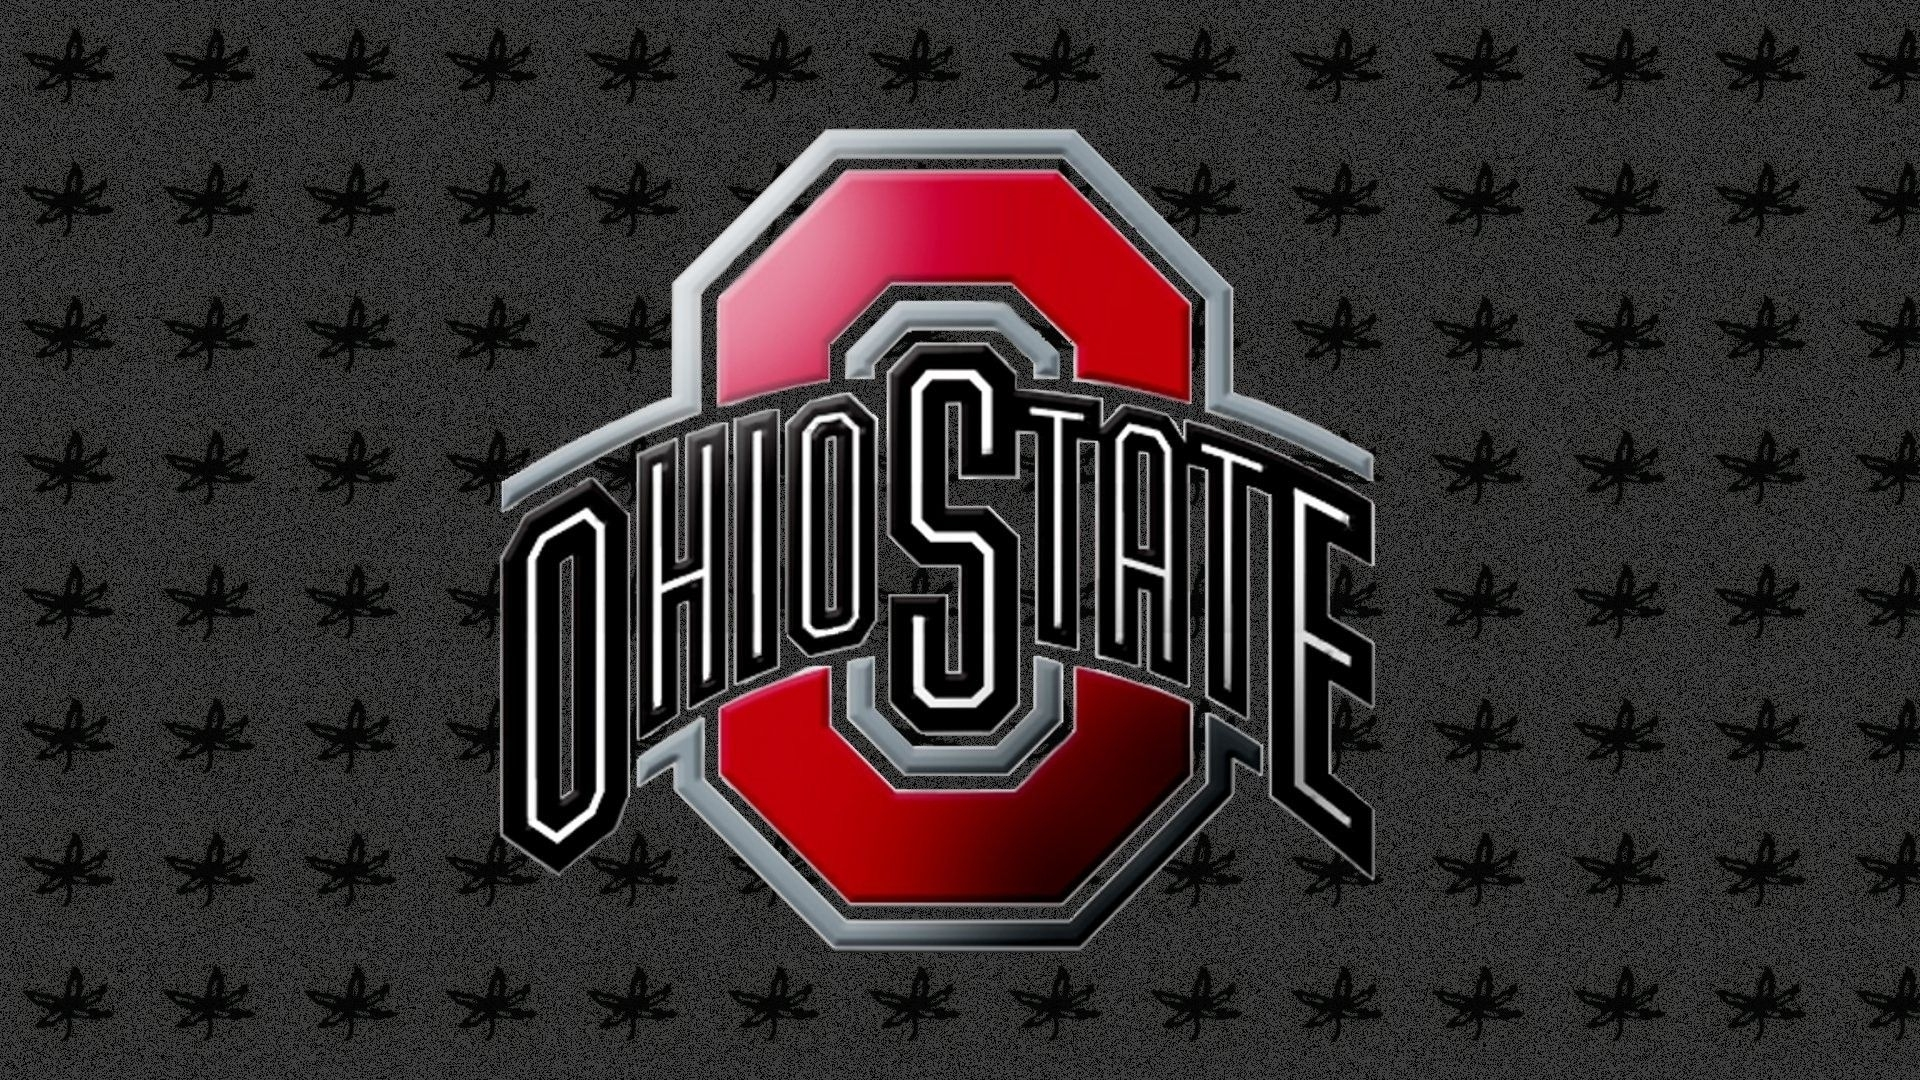 ohio state wallpaper for desktop - 2018 wallpapers hd | ohio, mac